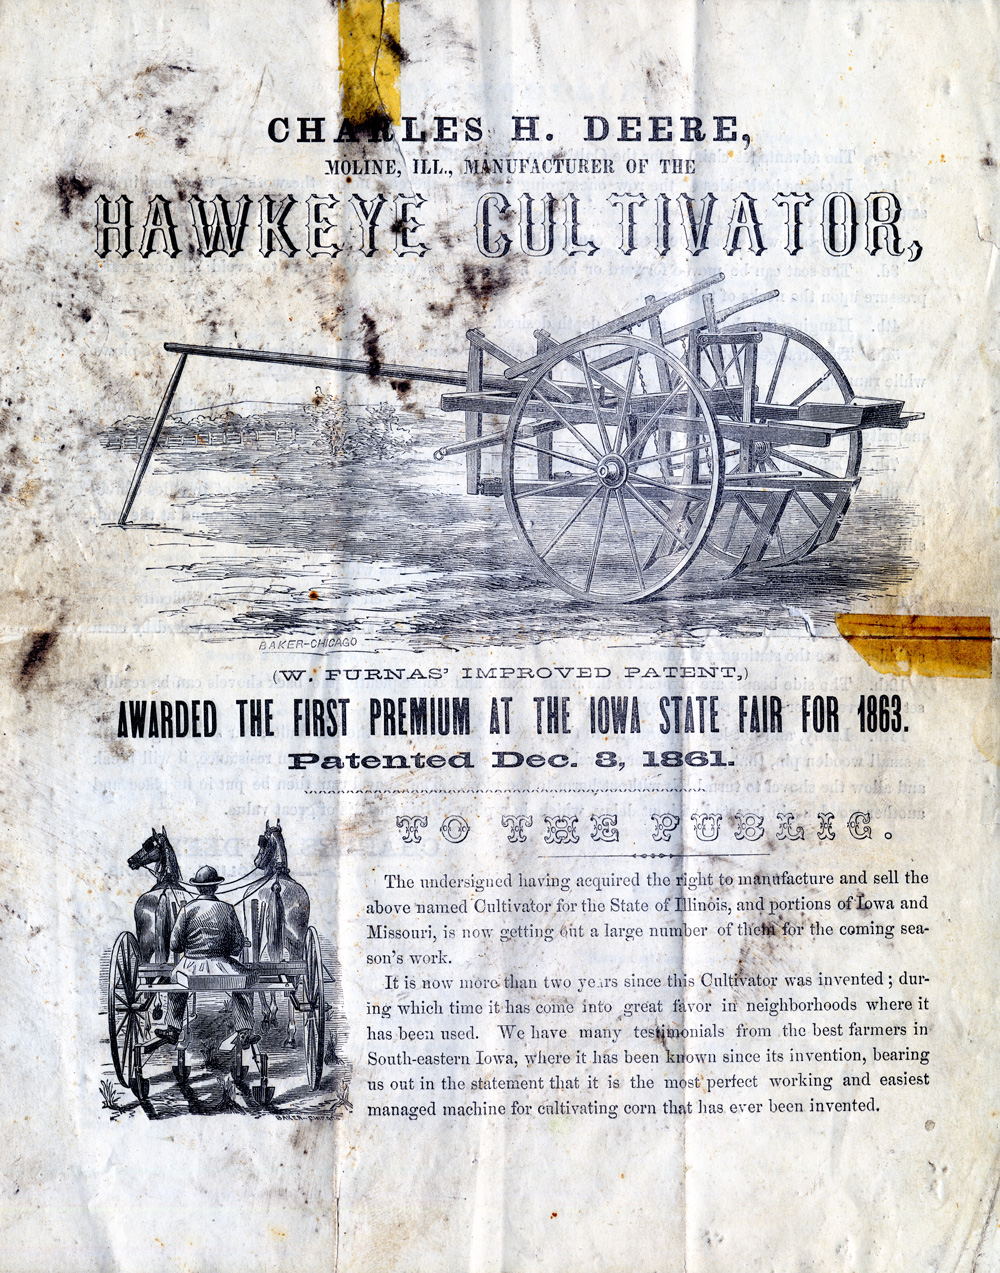 Two hand drawings and text telling about John Deere's riding implement, the Hawkeye Cultivator.